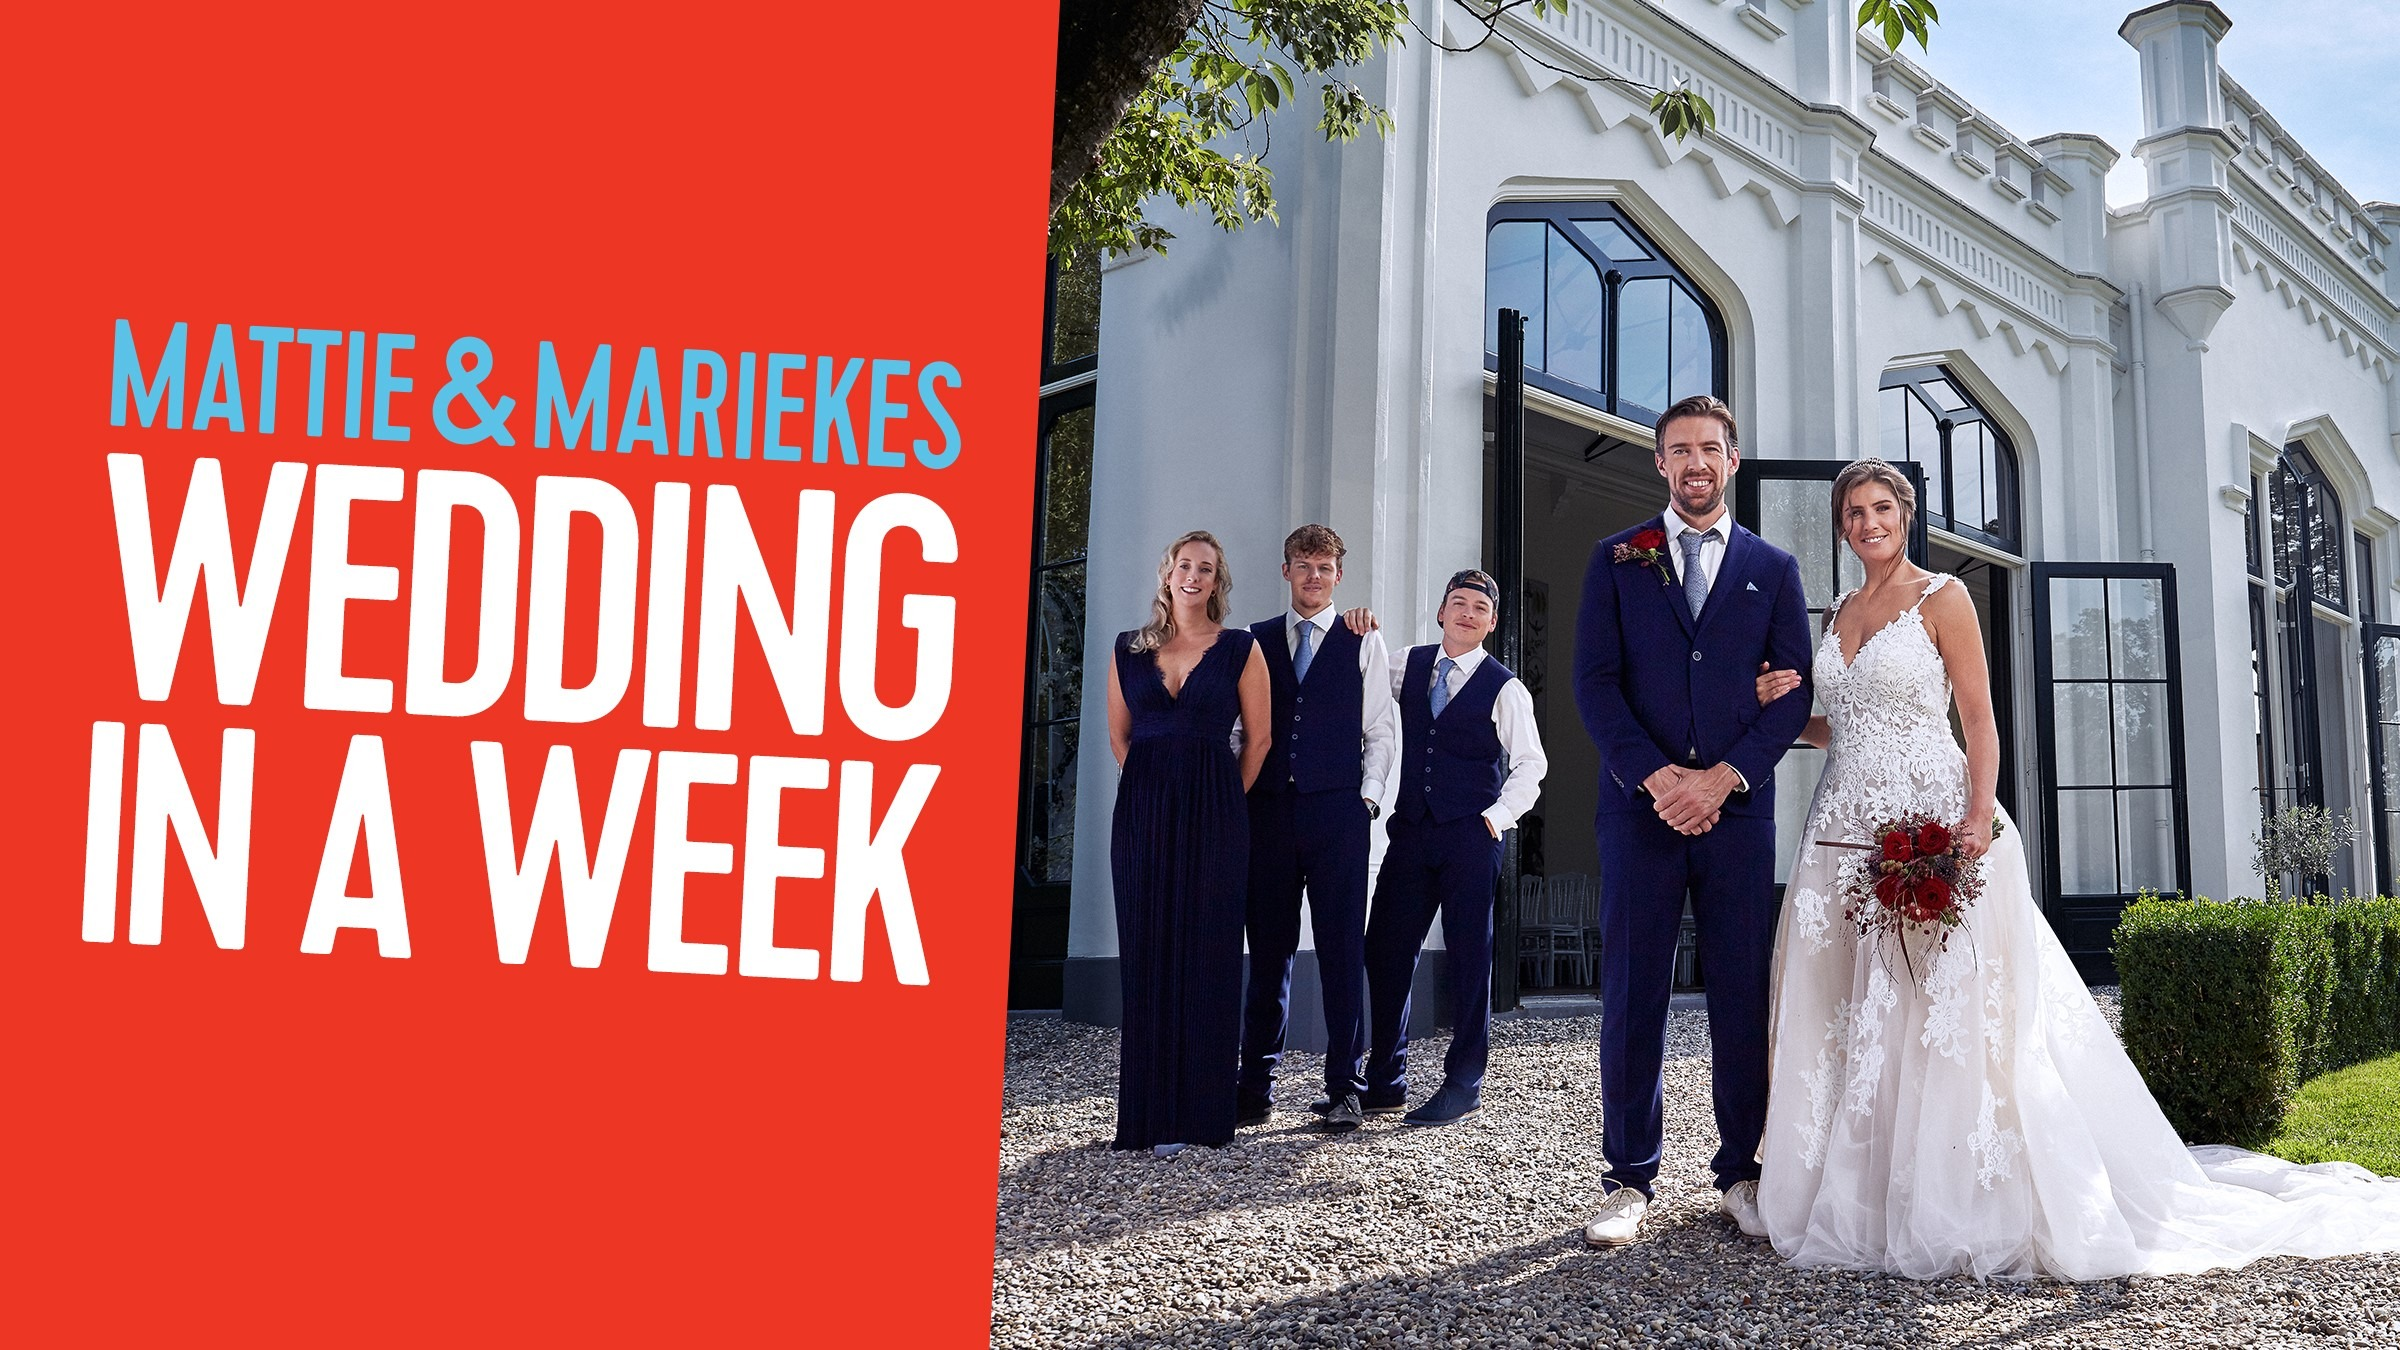 Qmusic mattie mariekes wedding in a week